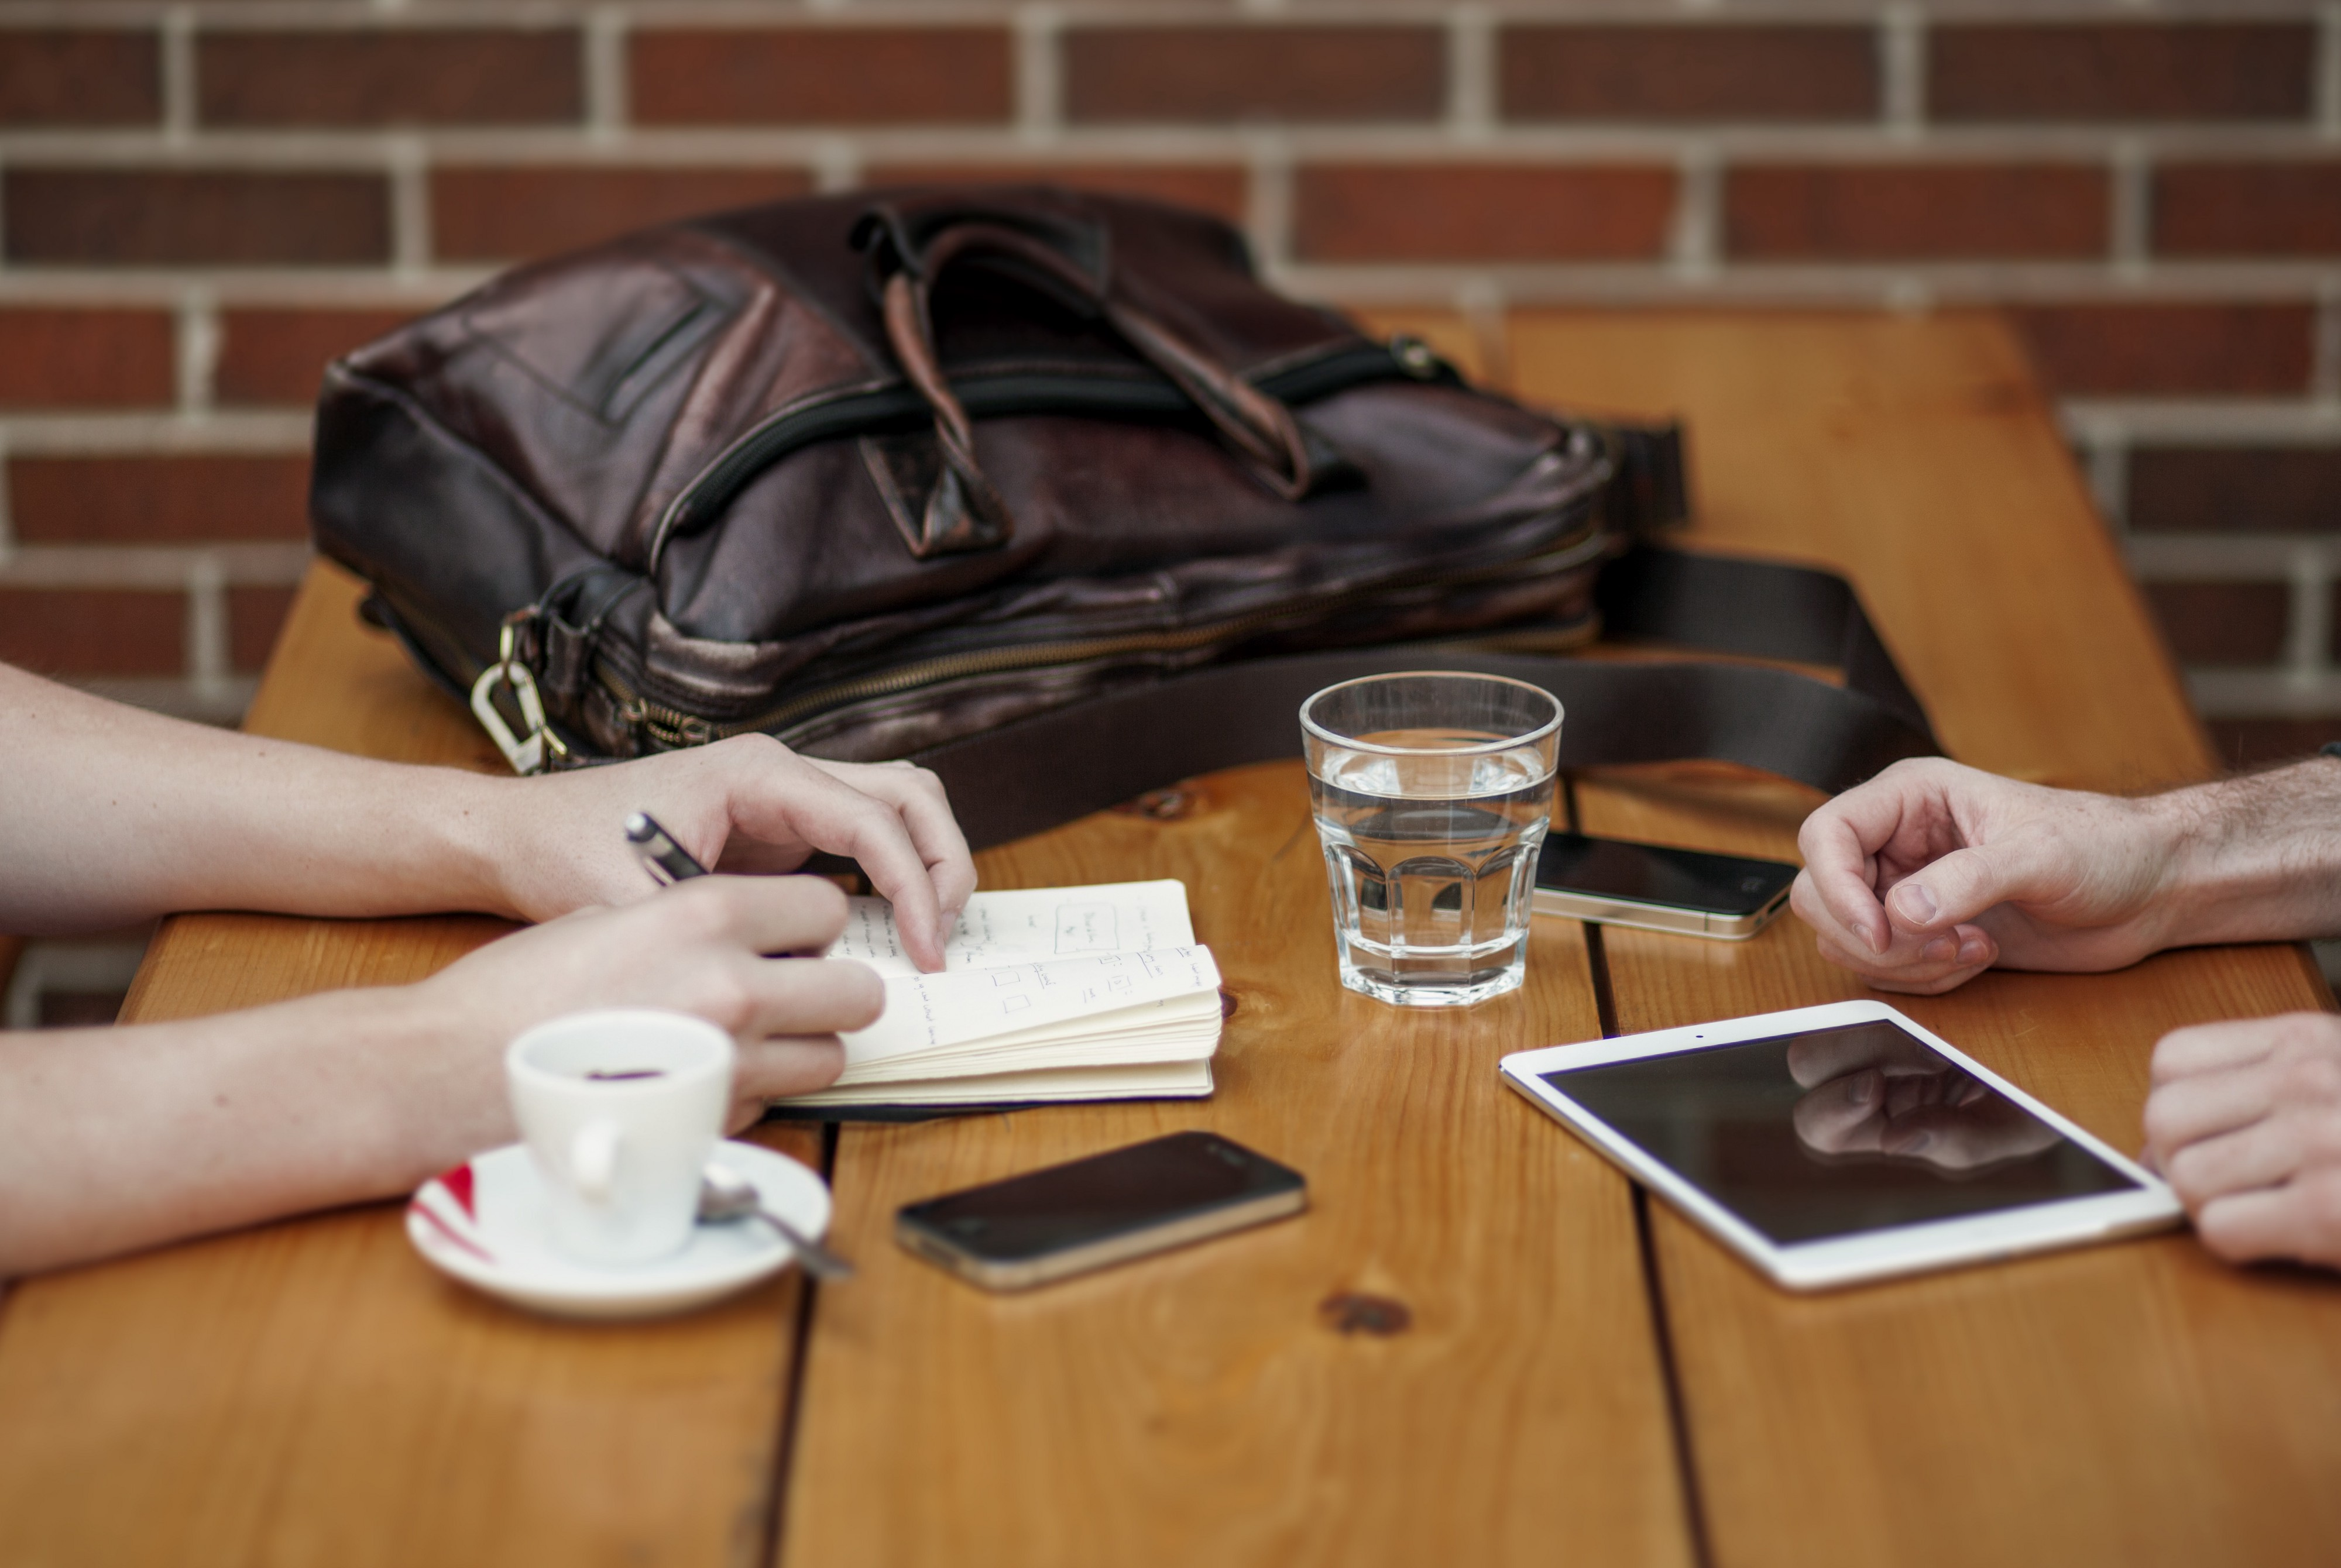 10 Questions to Ask Interns During an Interview and Why?